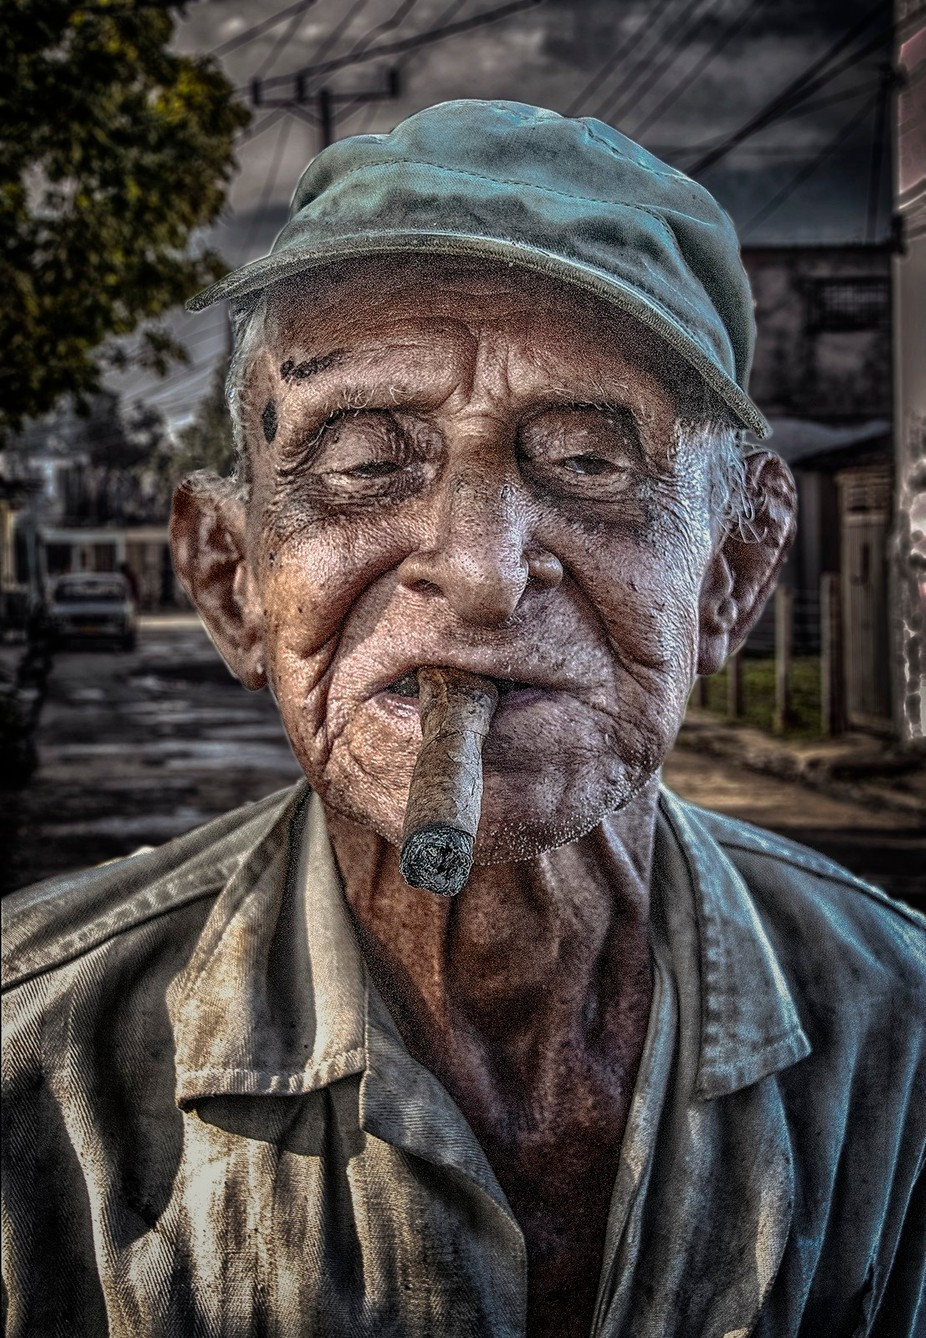 Street Sancti Spiritus, Cuba by RuneHermansen - Creative Reality Photo Contest